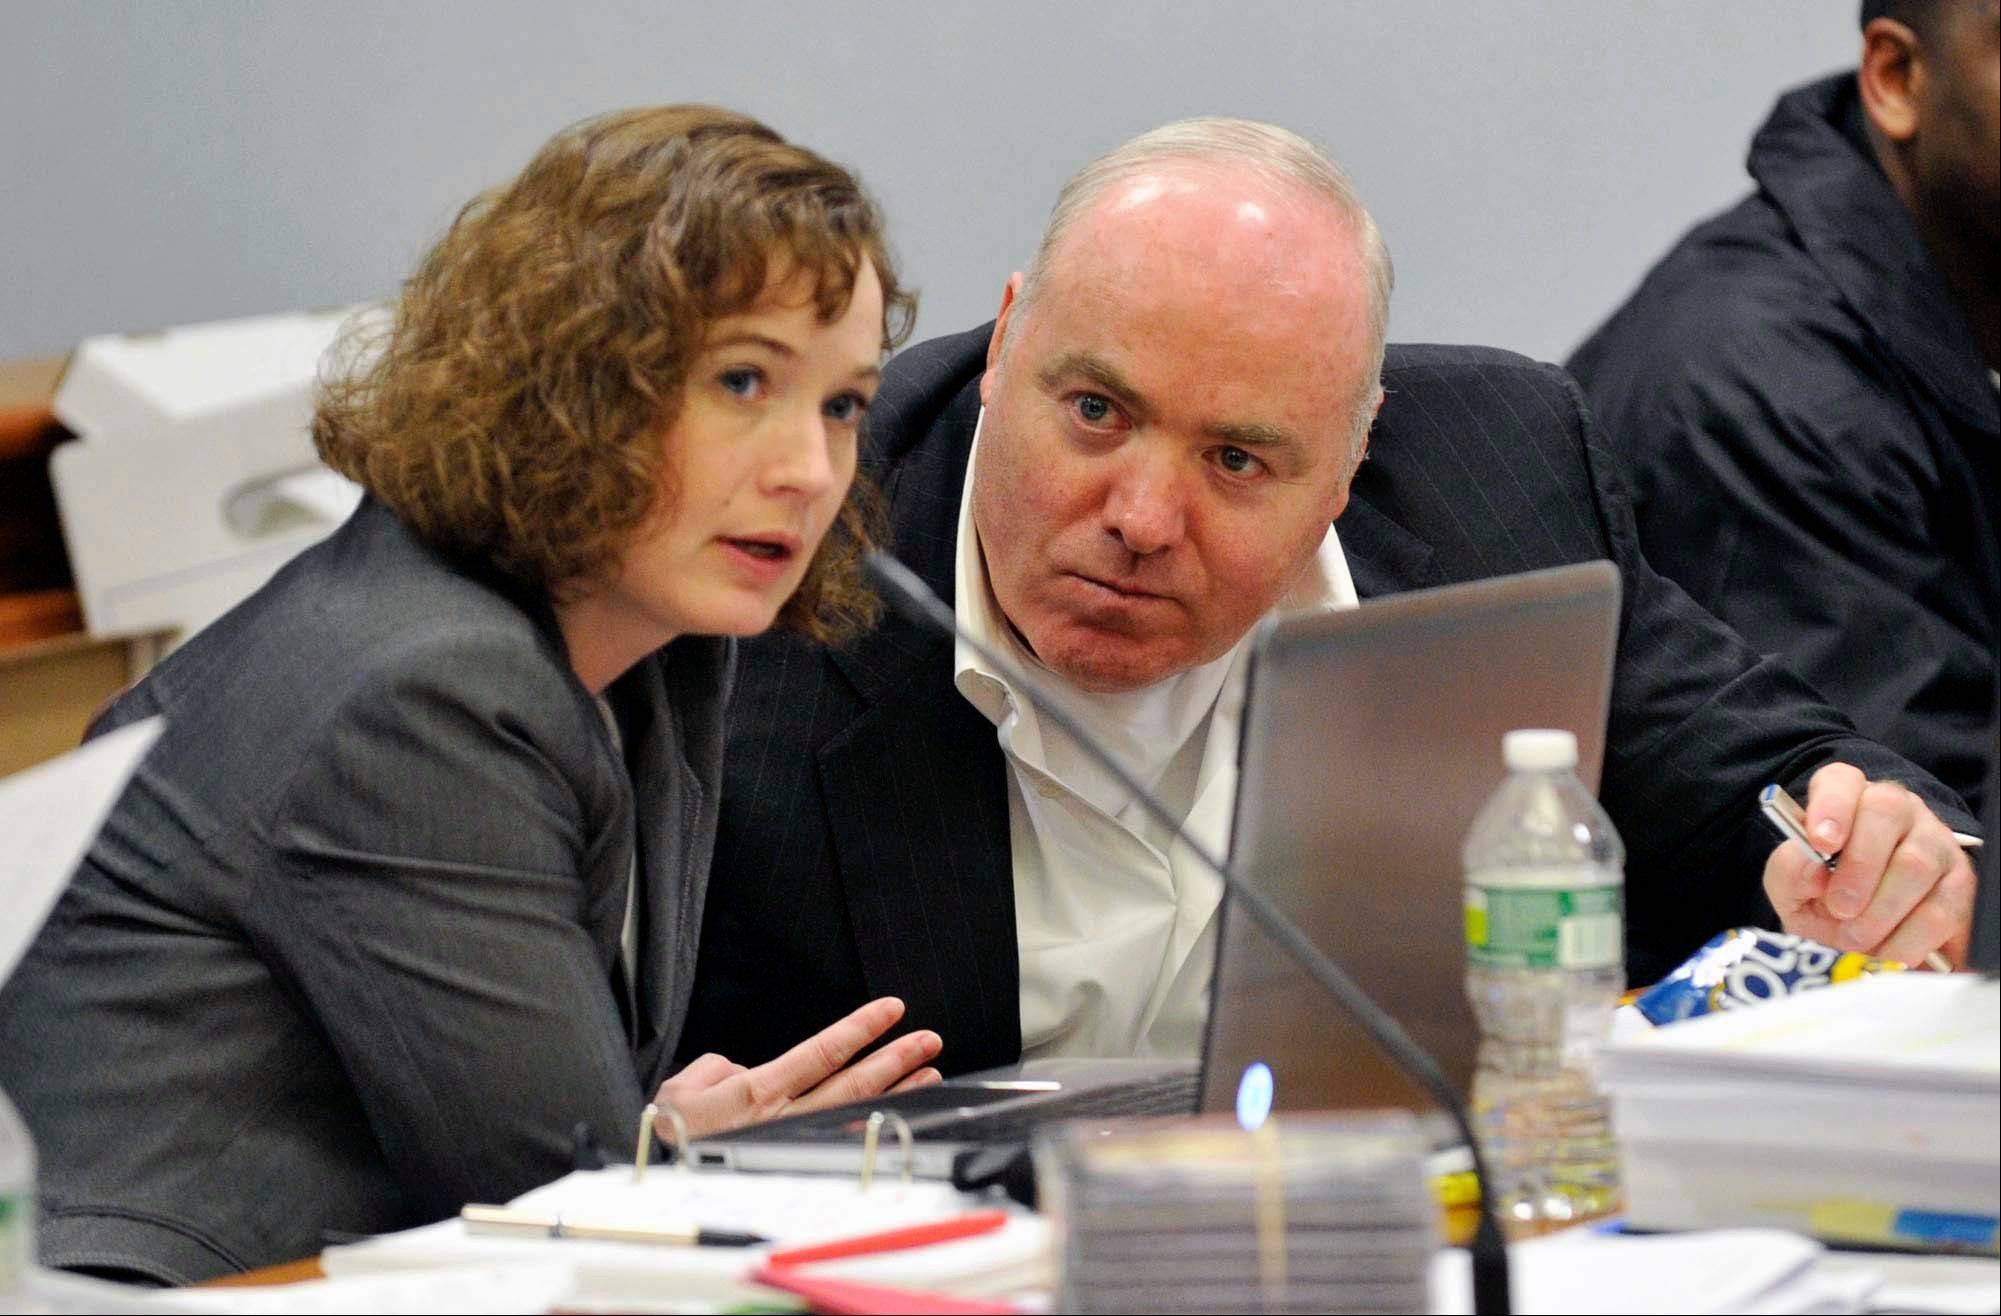 In a Friday, April 26, 2013 photo, Michael Skakel, right, talks to Jessica Santos, one of his defense attorneys, during his appeal at State Superior Court in Vernon, Conn.